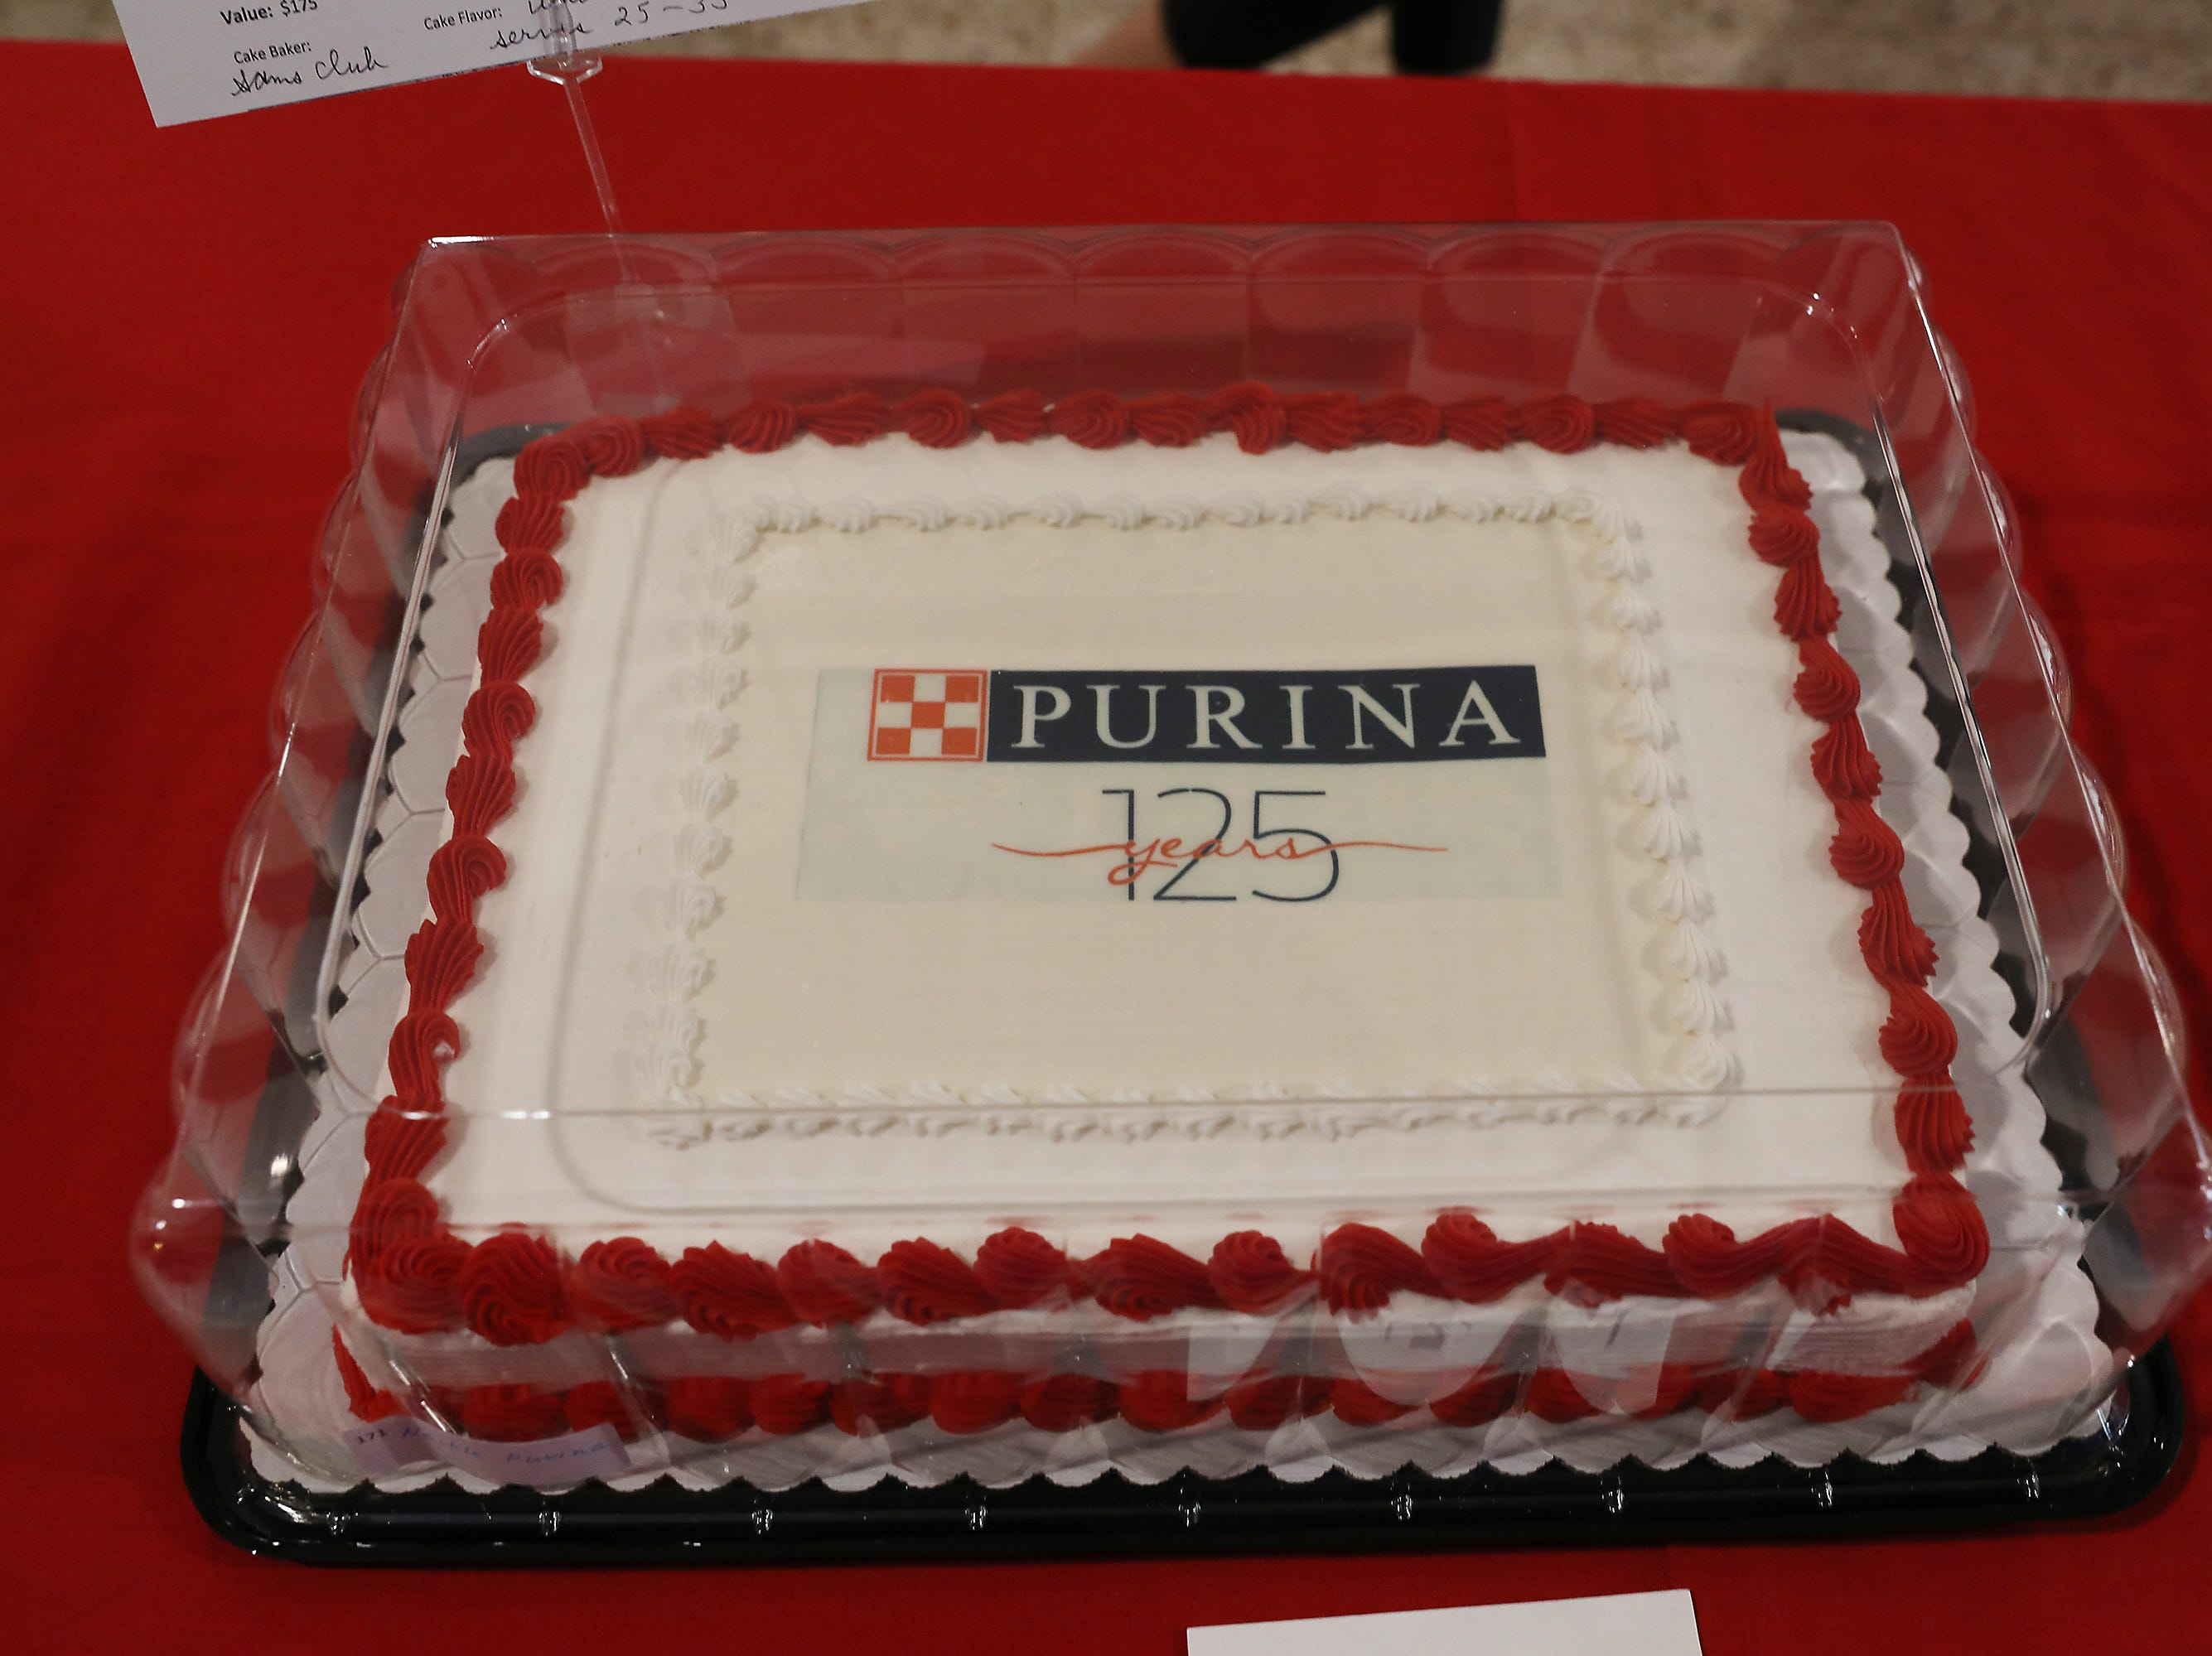 4:15 P.M. Thursday cake 171 Nestle Purina - 10 cases of Moist and Meaty; $300